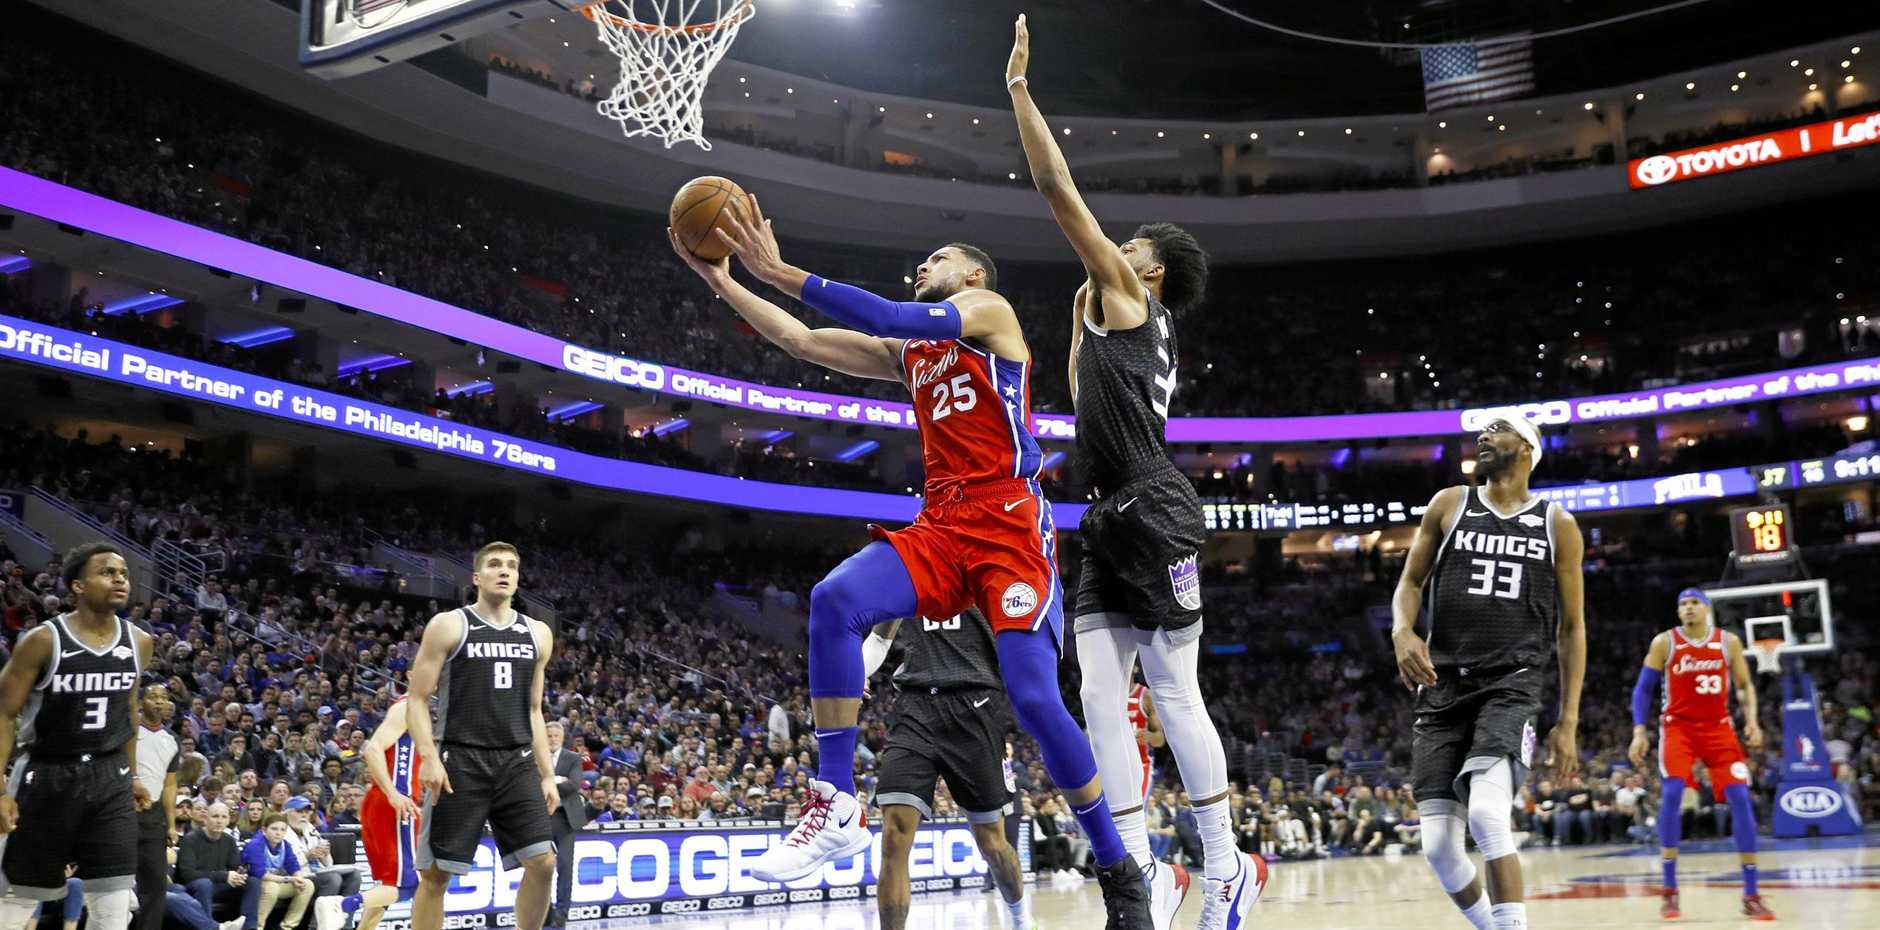 The Philadelphia 76ers' Ben Simmons in action against the Sacramento Kings. Picture: Matt Slocum/AP